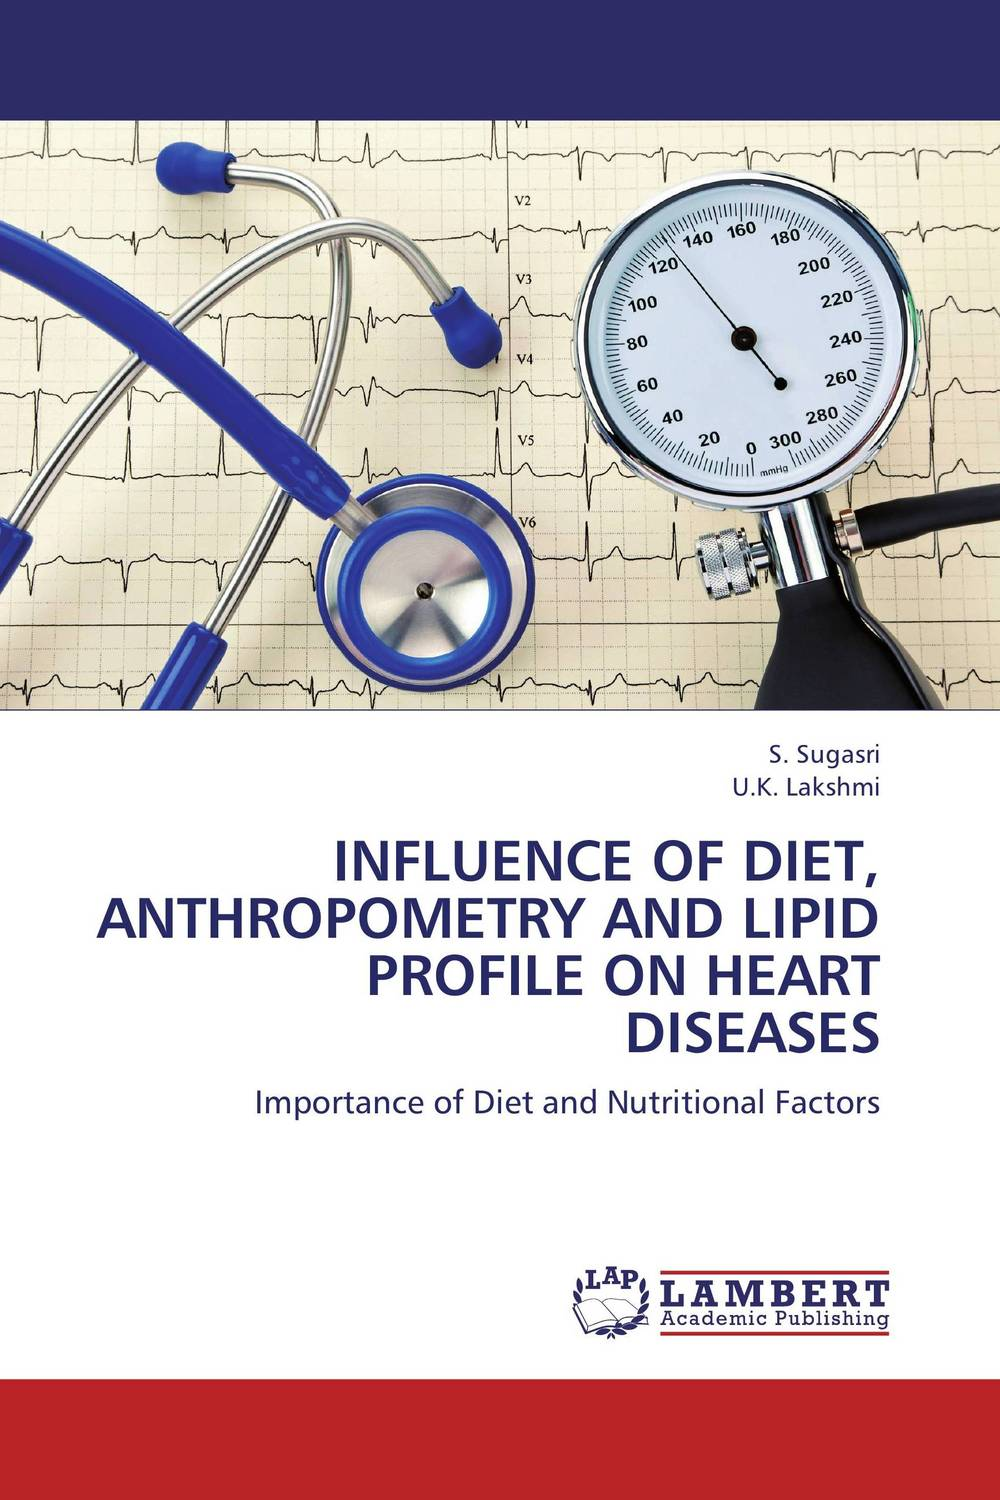 INFLUENCE OF DIET, ANTHROPOMETRY AND LIPID PROFILE ON HEART DISEASES the ice diet